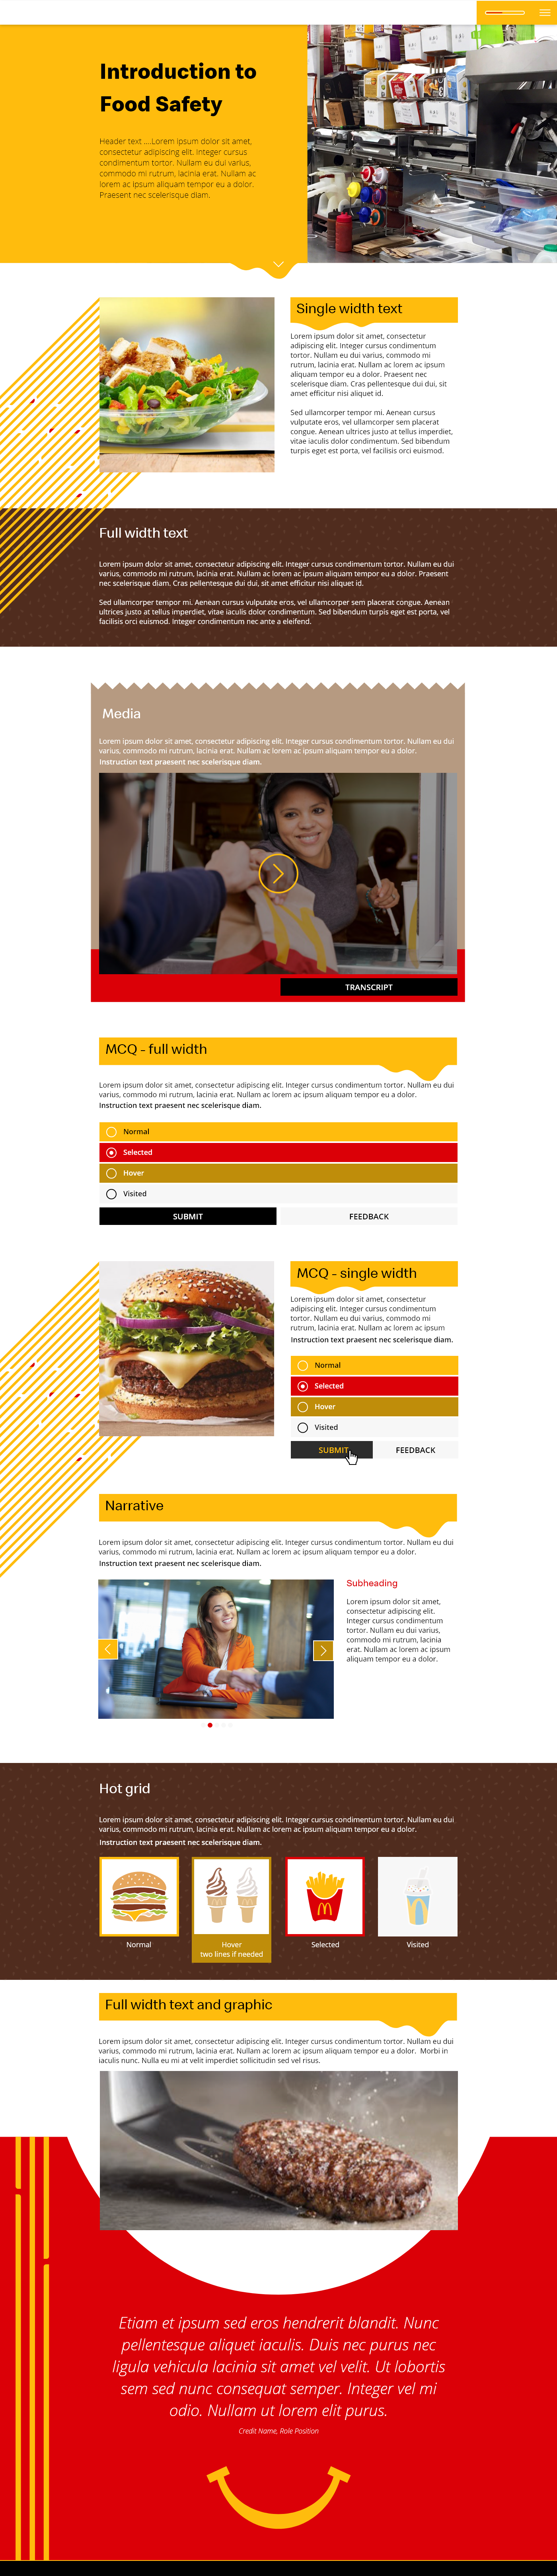 McDonalds elearning project page